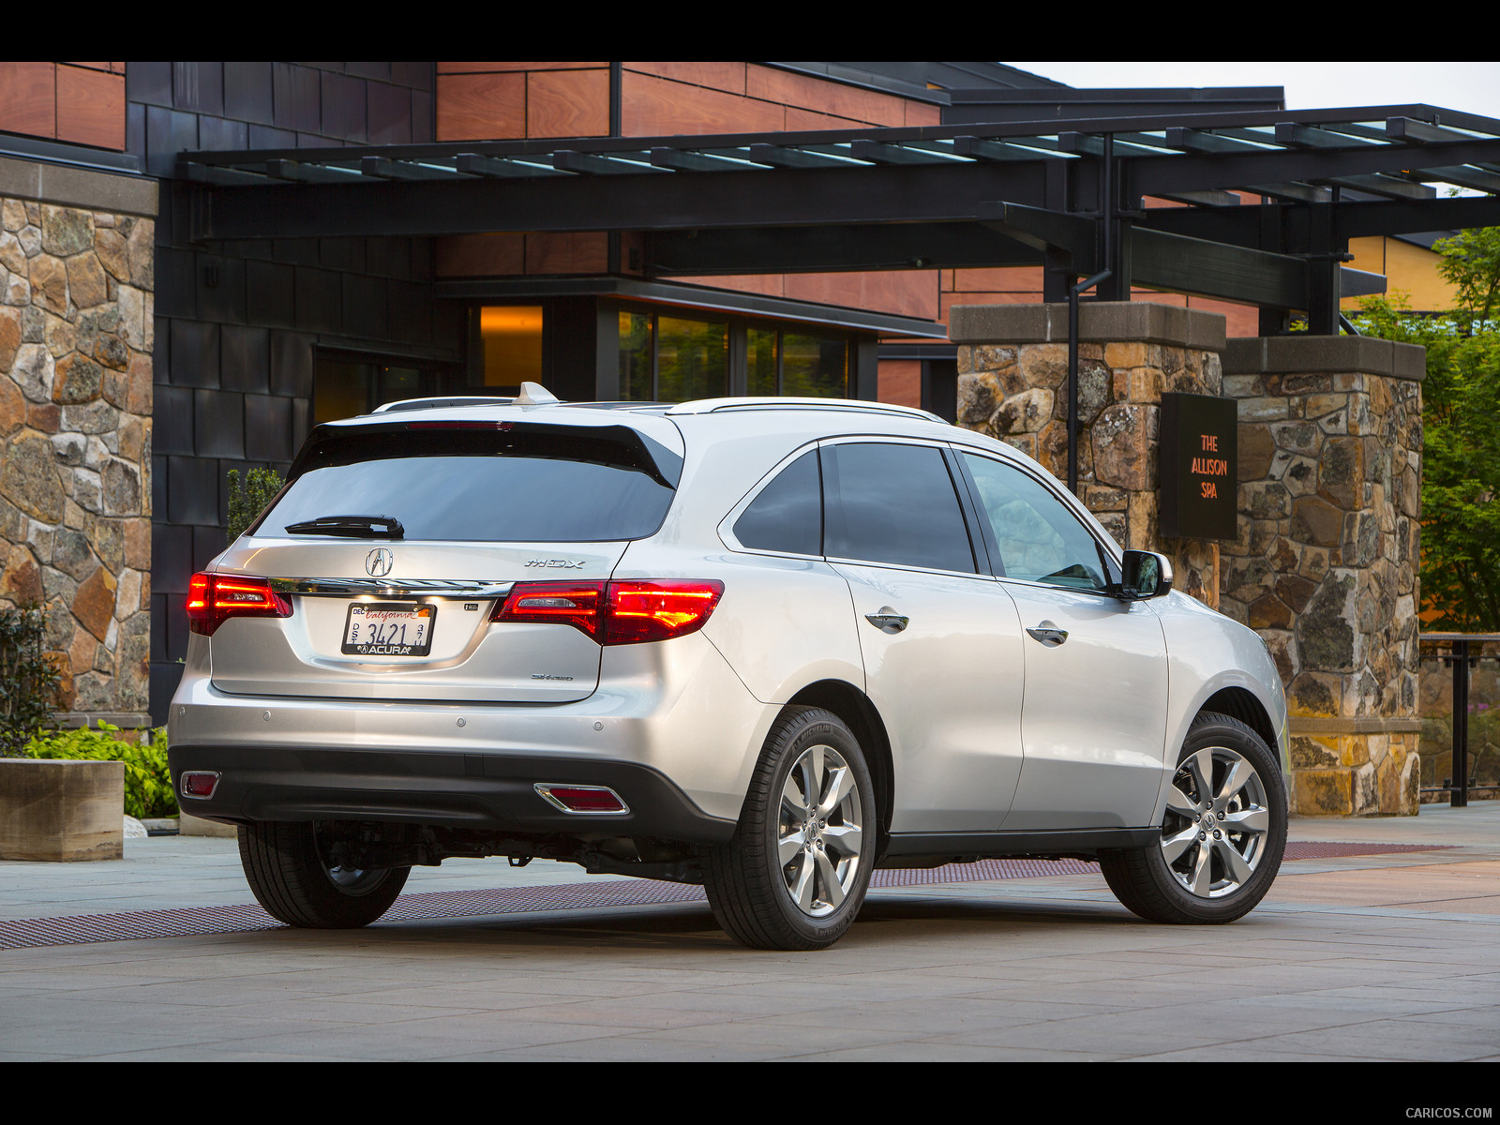 Comparison - Acura Mdx Base 2015 - Vs